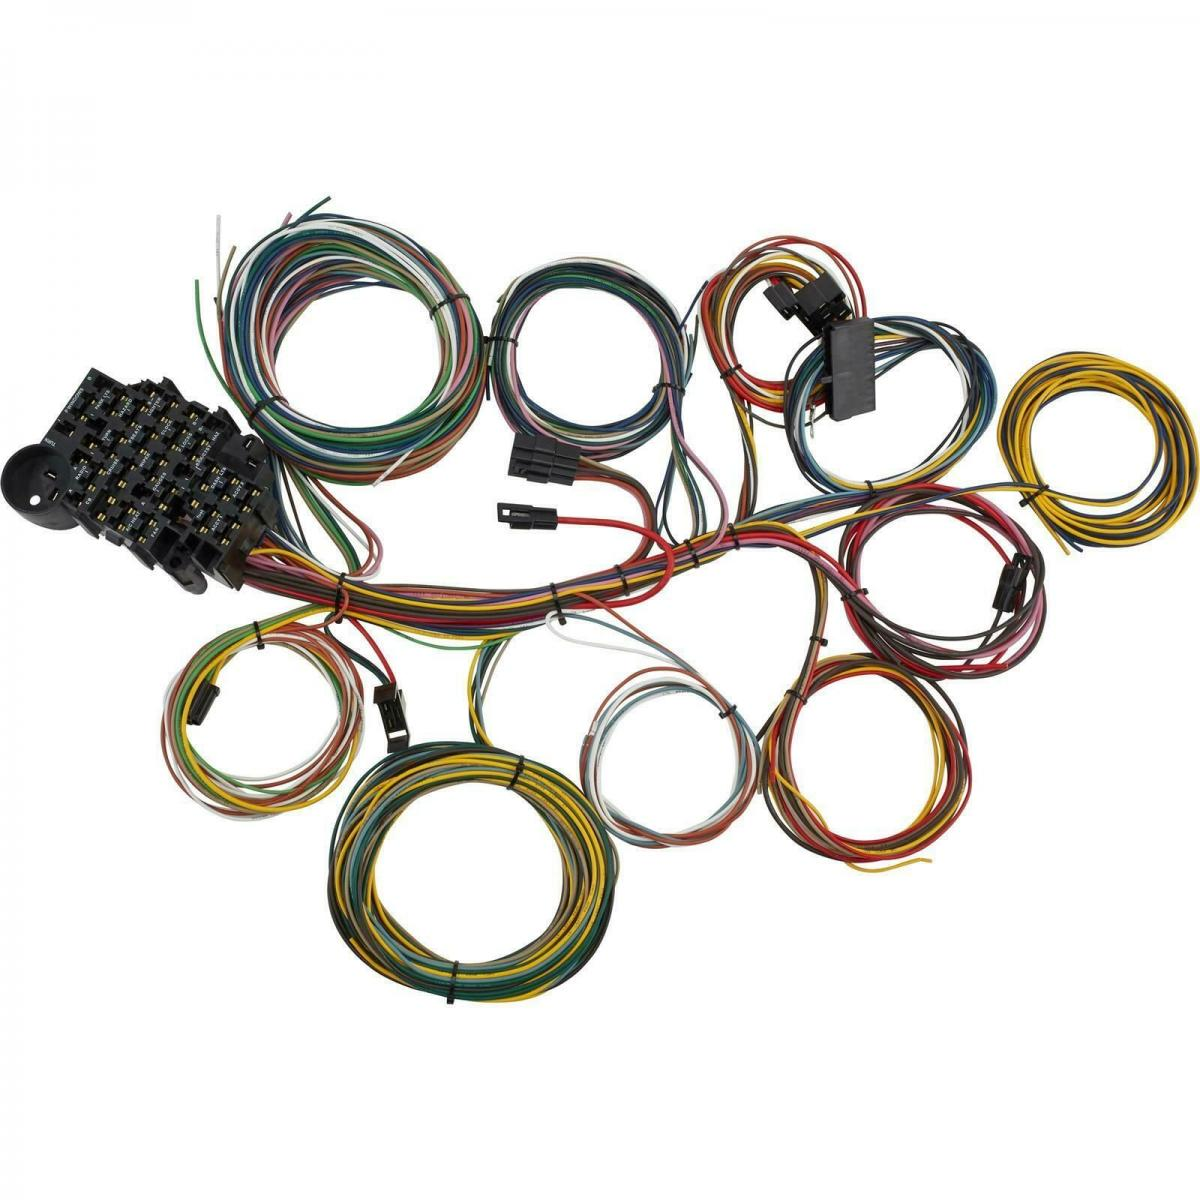 hight resolution of eazy wiring 22 circuit harness kit